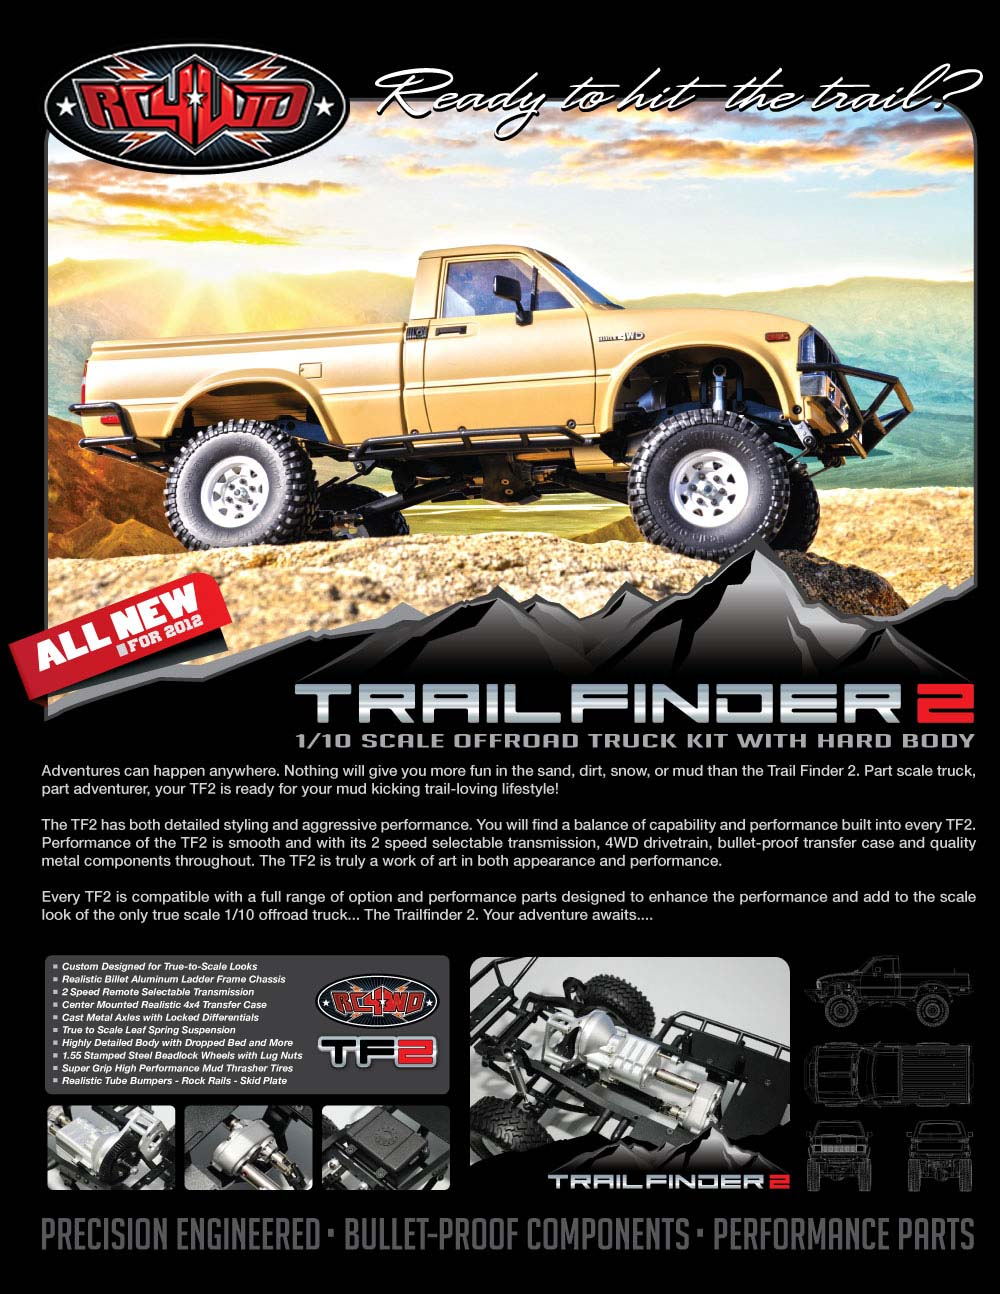 Trail Finder 2 Truck Kit w/Mojave Body Set (White) - RC4WD Forums